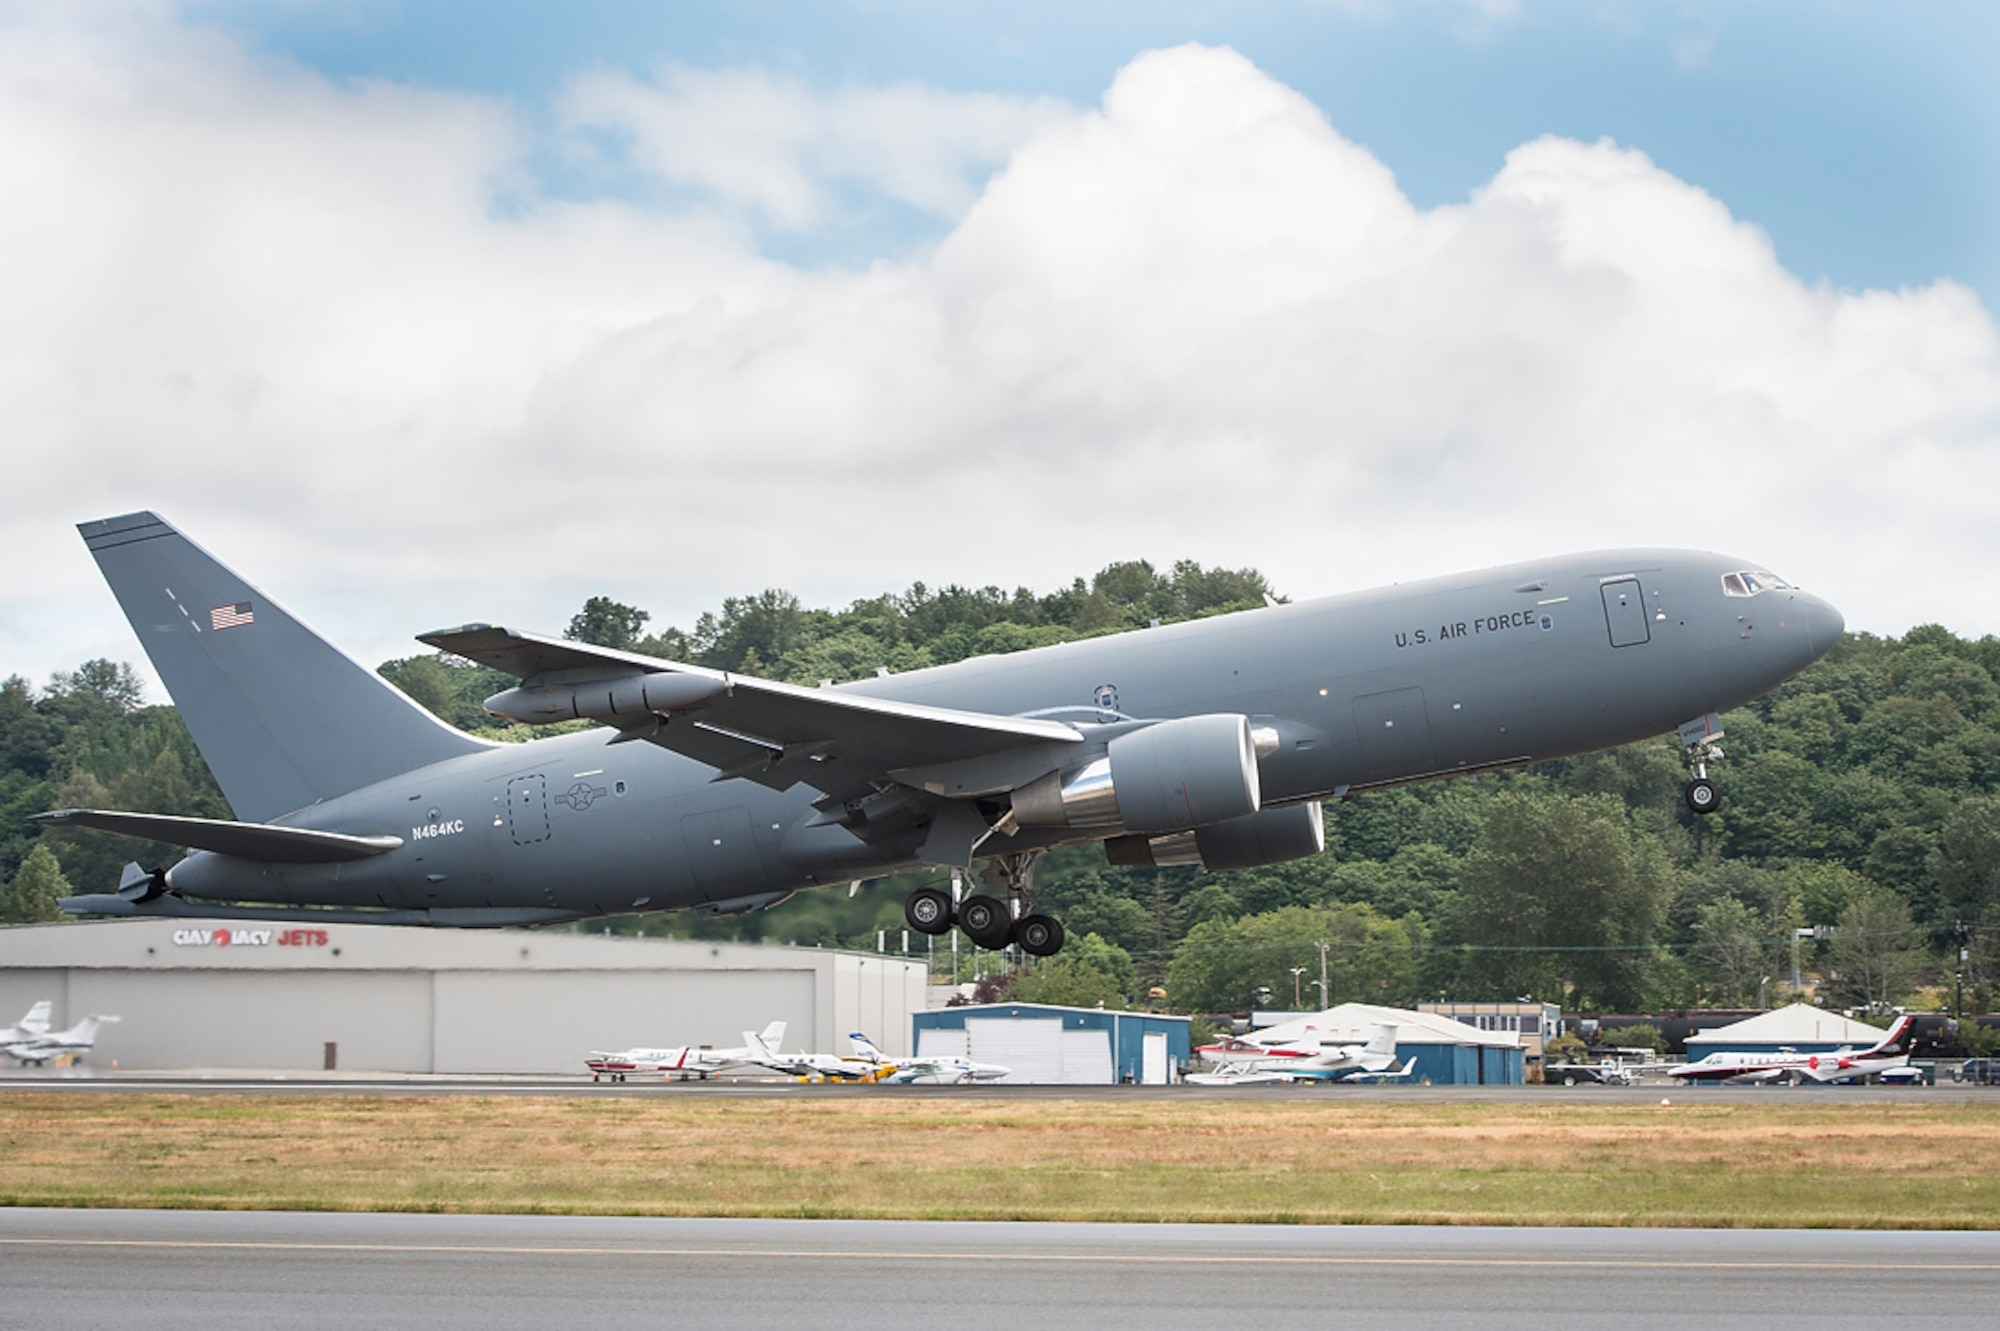 A KC-46A Pegasus tanker takes off from Boeing Field, Seattle, June 4, 2018. The KC-46 program achieved an important milestone July 6, with completion of the final flight tests required for first aircraft delivery to the U.S. Air Force. (Courtesy photo)